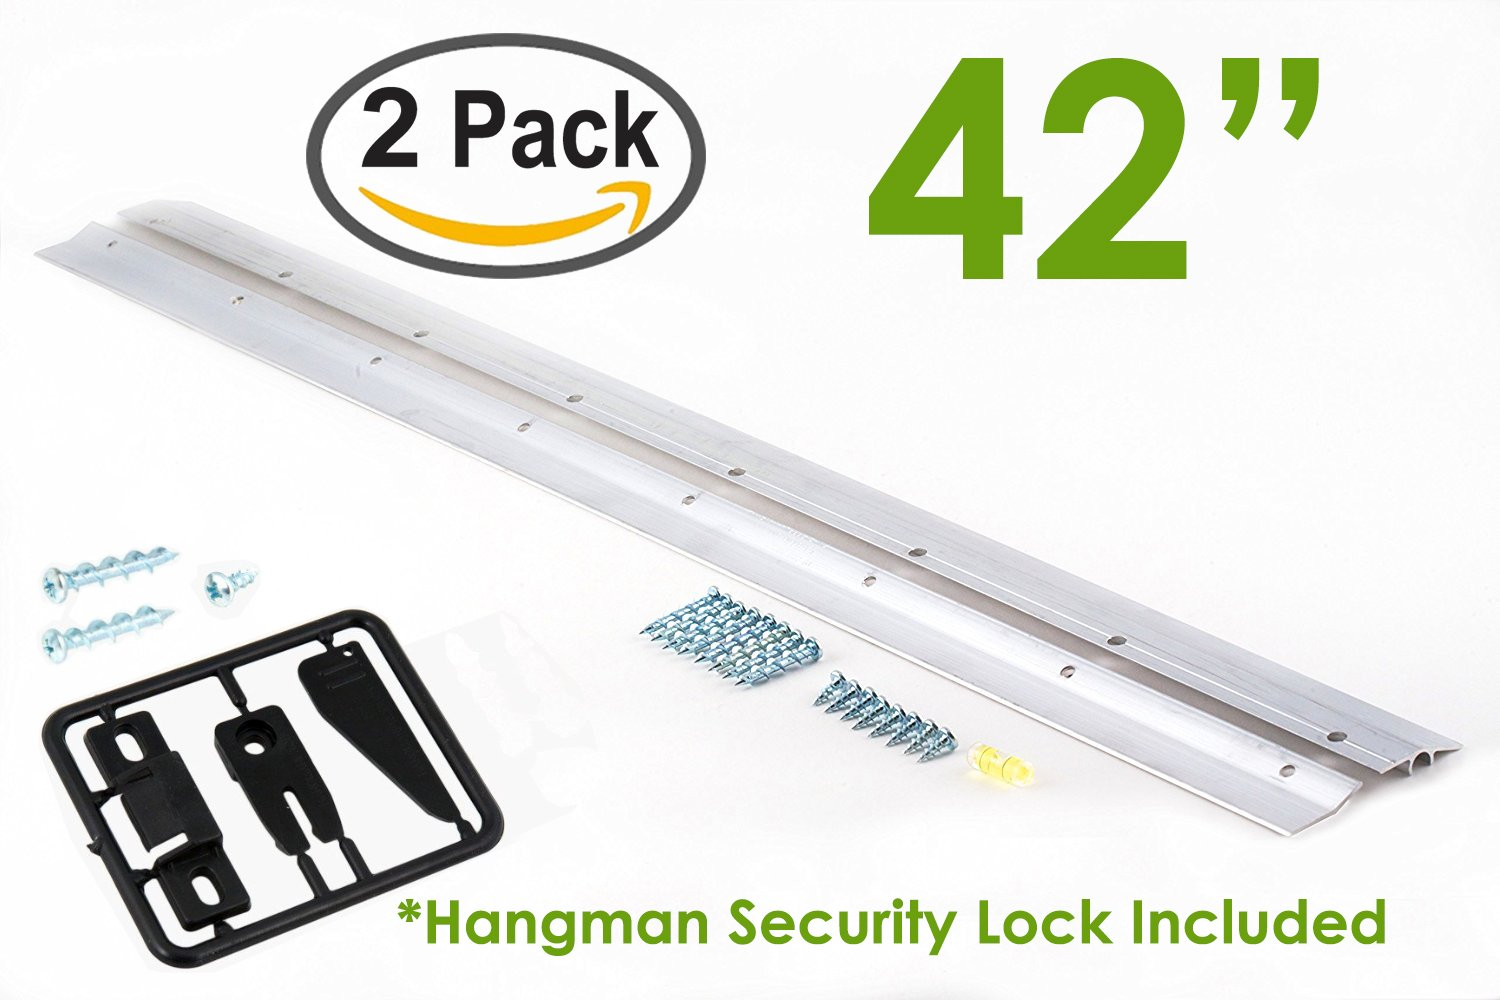 Hangman 42'' Heavy-Duty Mirror and Picture Hanger with Security Lock Includes Walldog Anchorless Screws - Aluminum (HM-42D-SL) | Pack of 2 Hangers